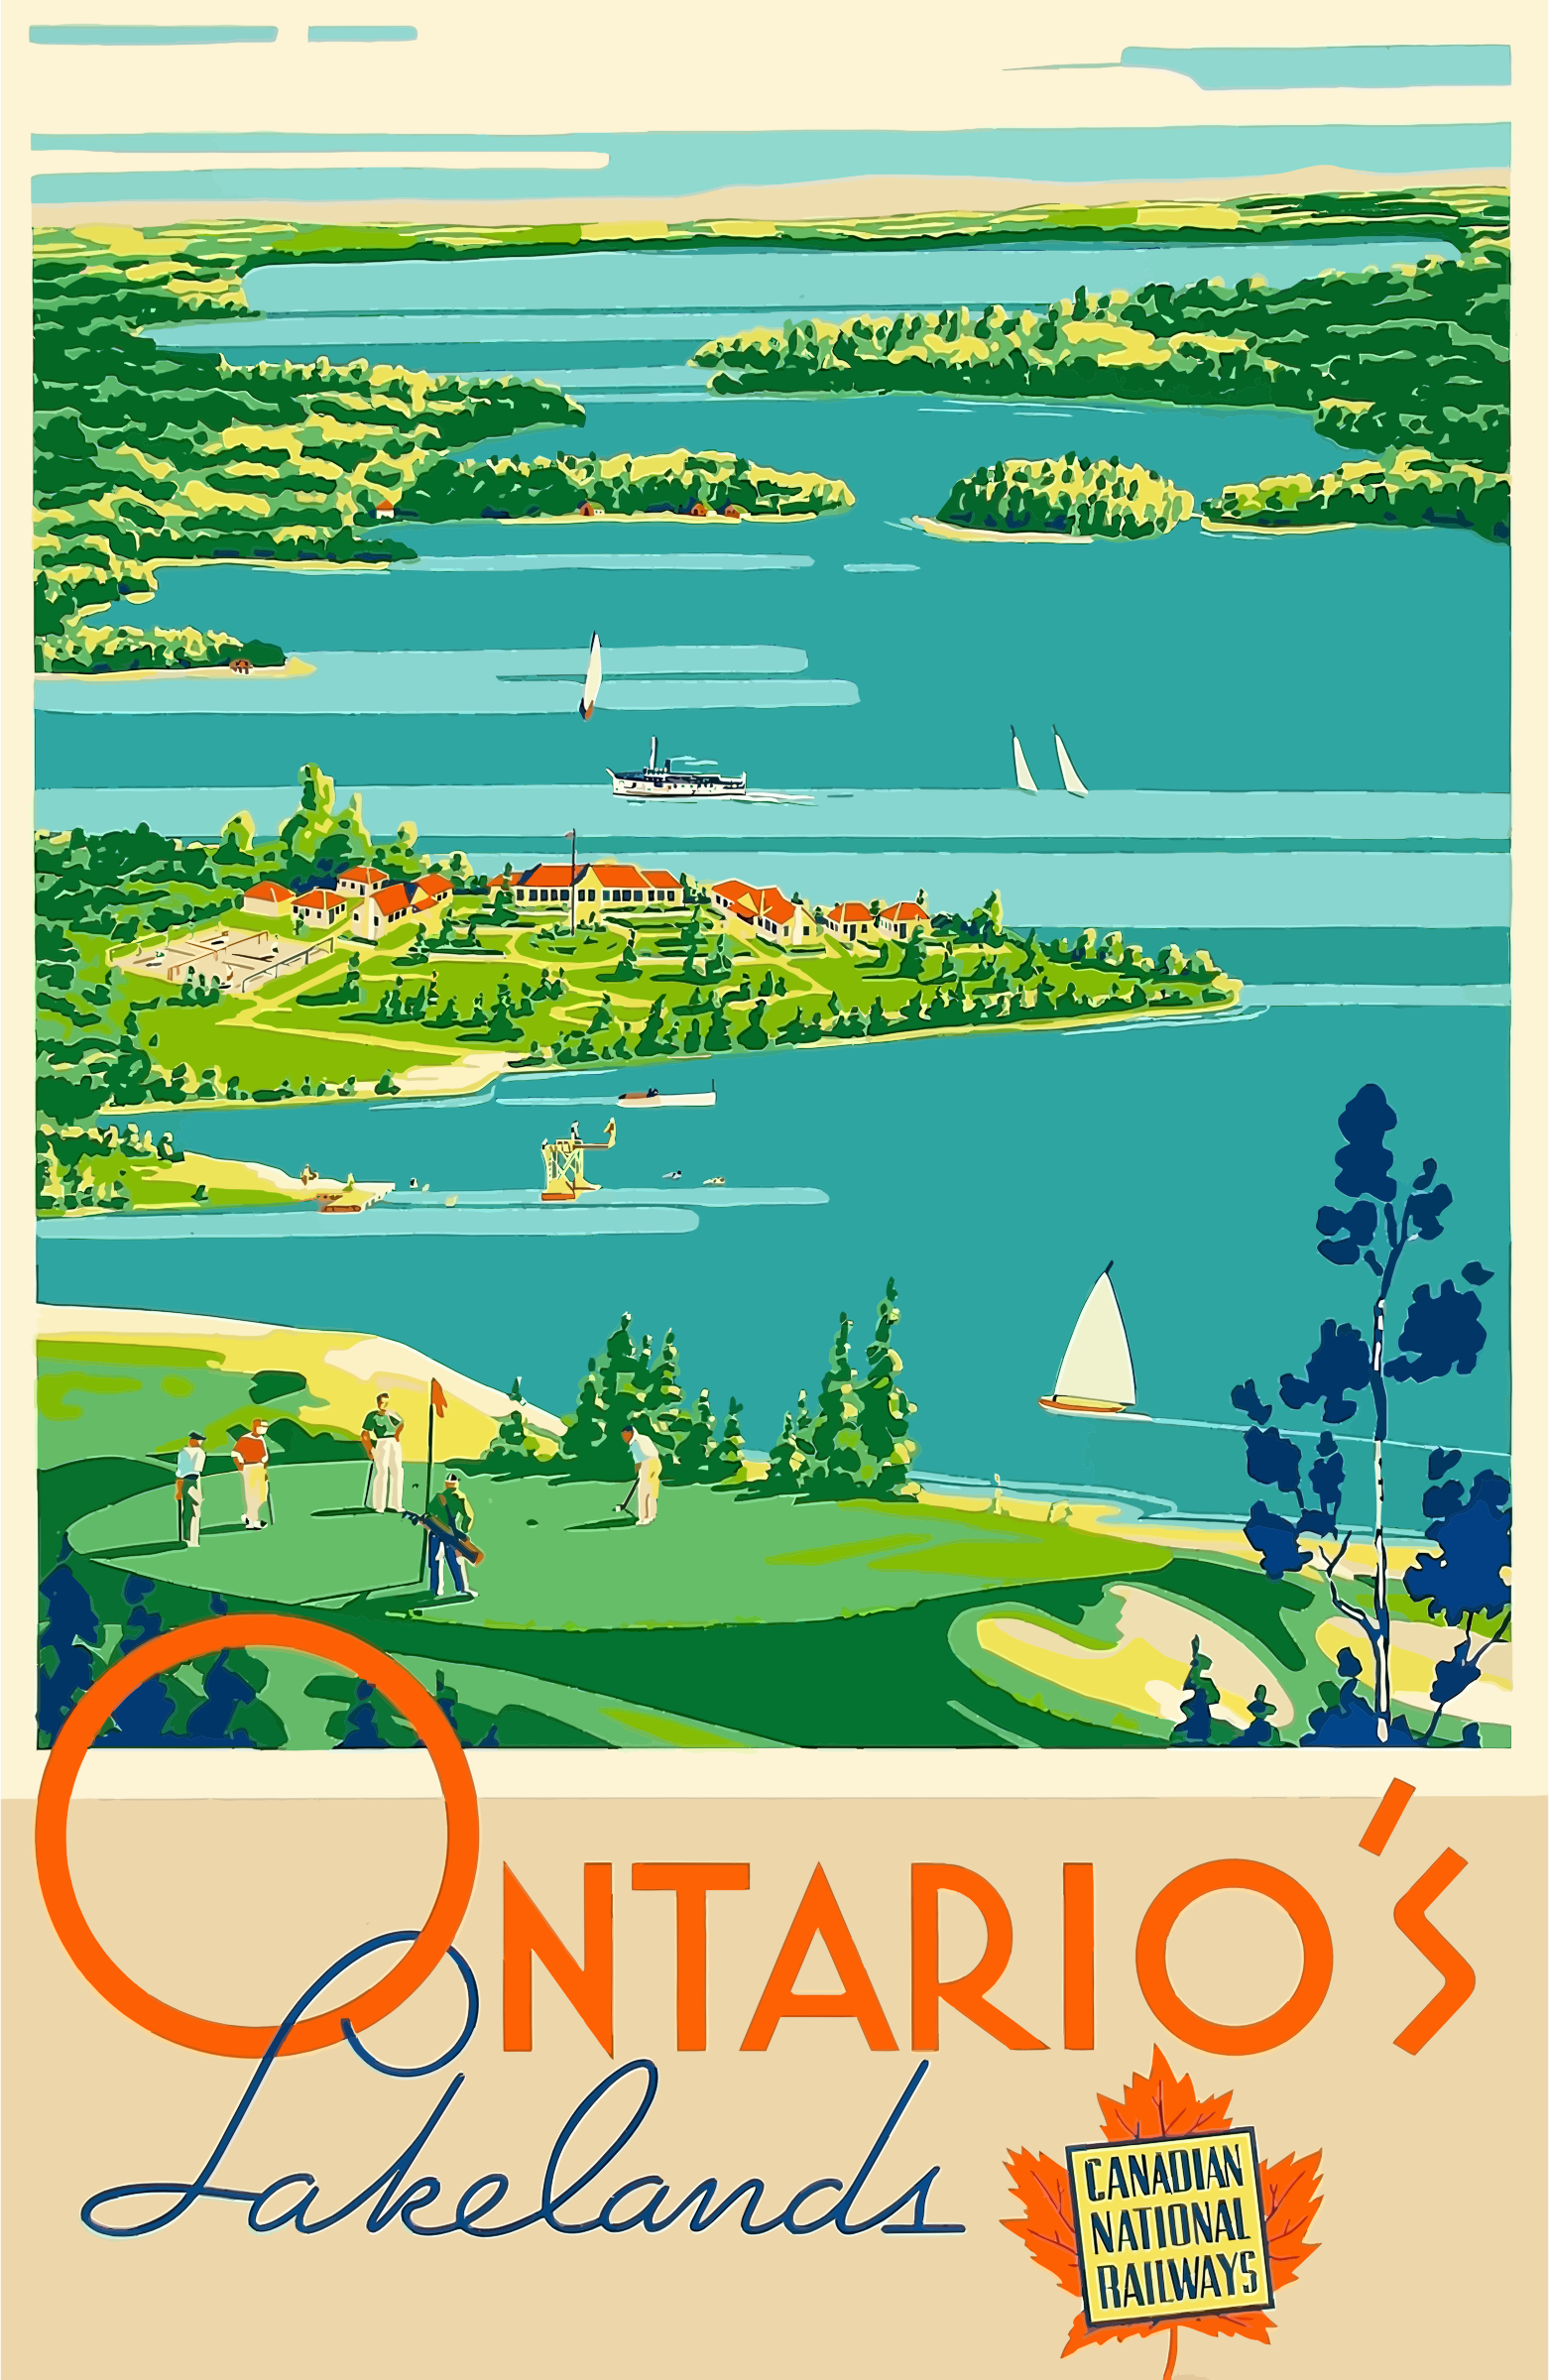 Vintage Travel Poster Ontario Canada by GDJ